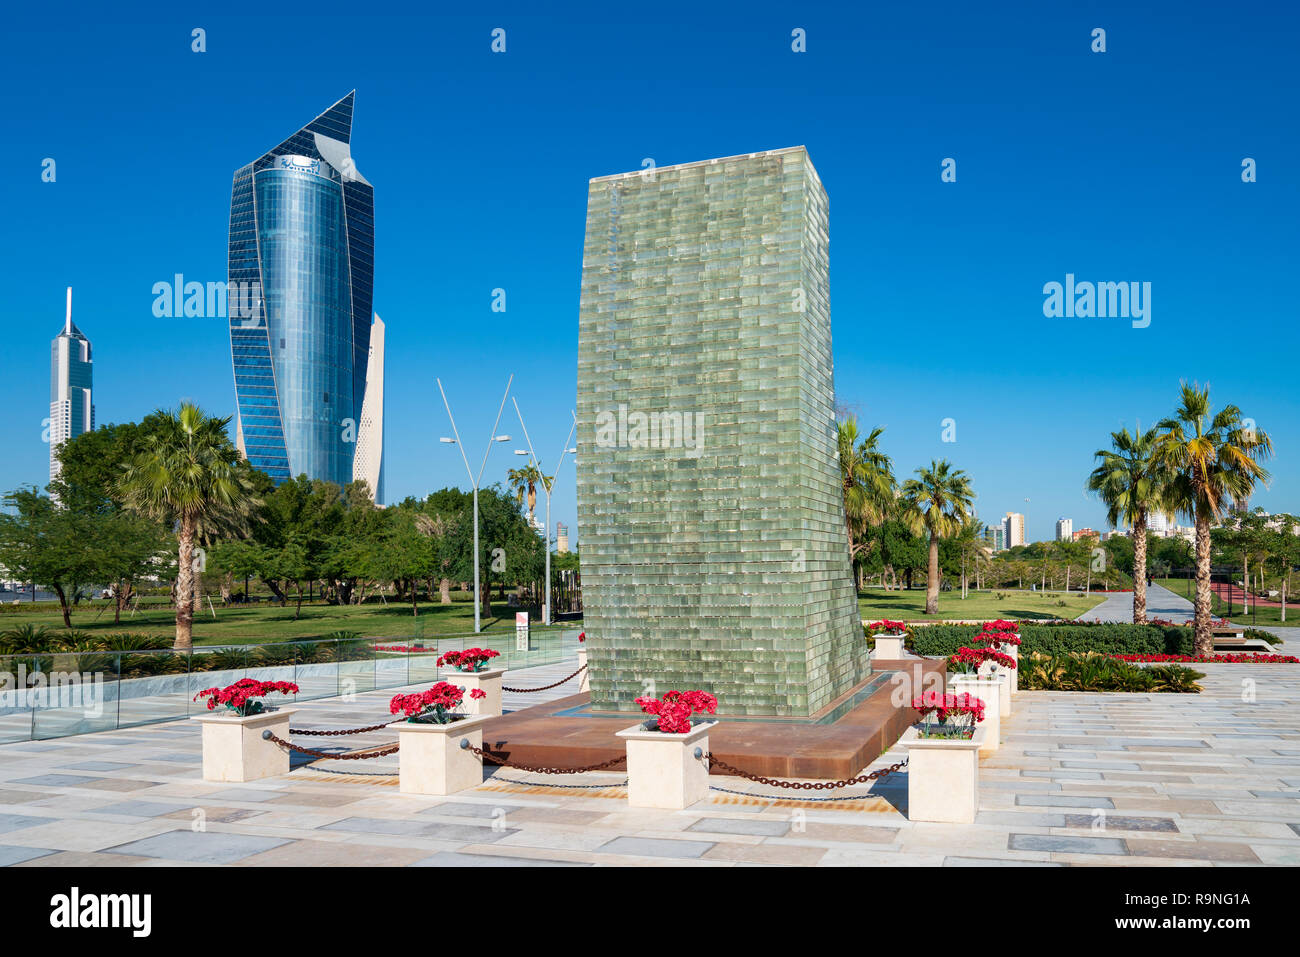 Martyrs Monument in  Al Shaheed Park in Kuwait, Middle East - Stock Image